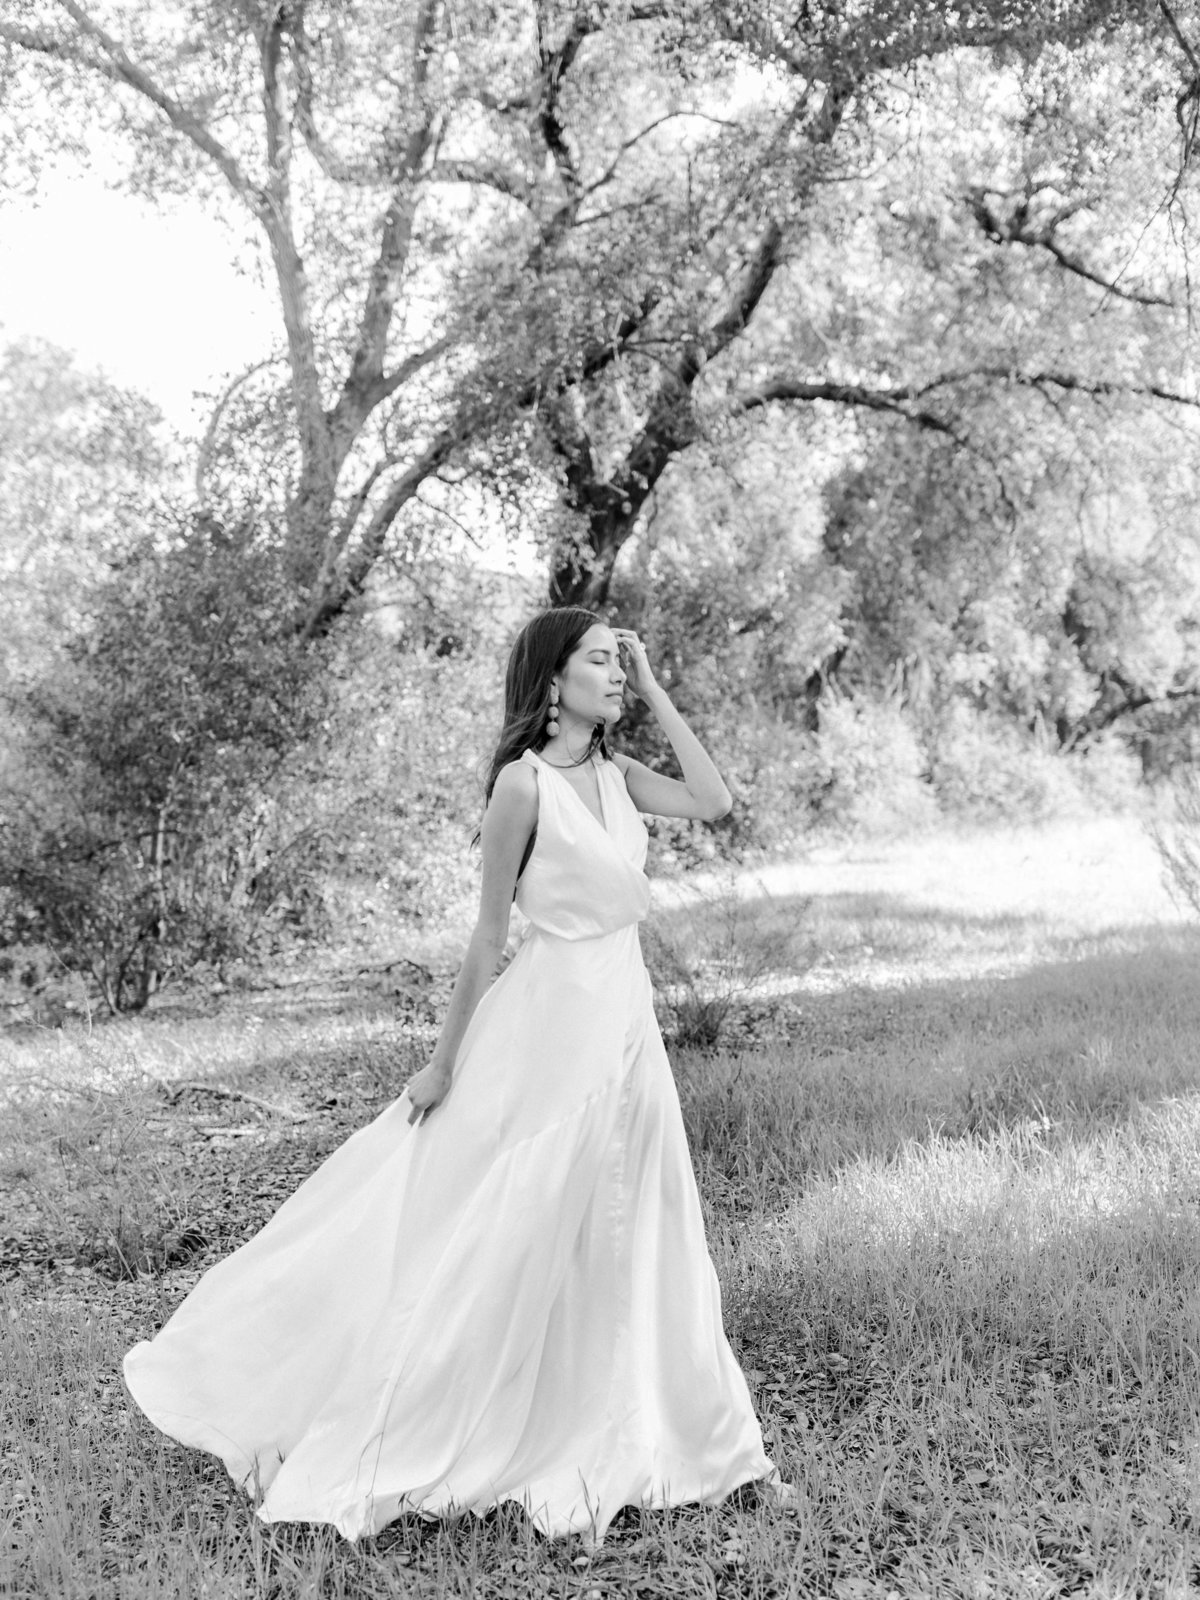 Babsie-Ly-Photography-Fine-Art-Film-Wedding-Bridal-Editorial-in-Hidden-Oaks-San-Diego-137